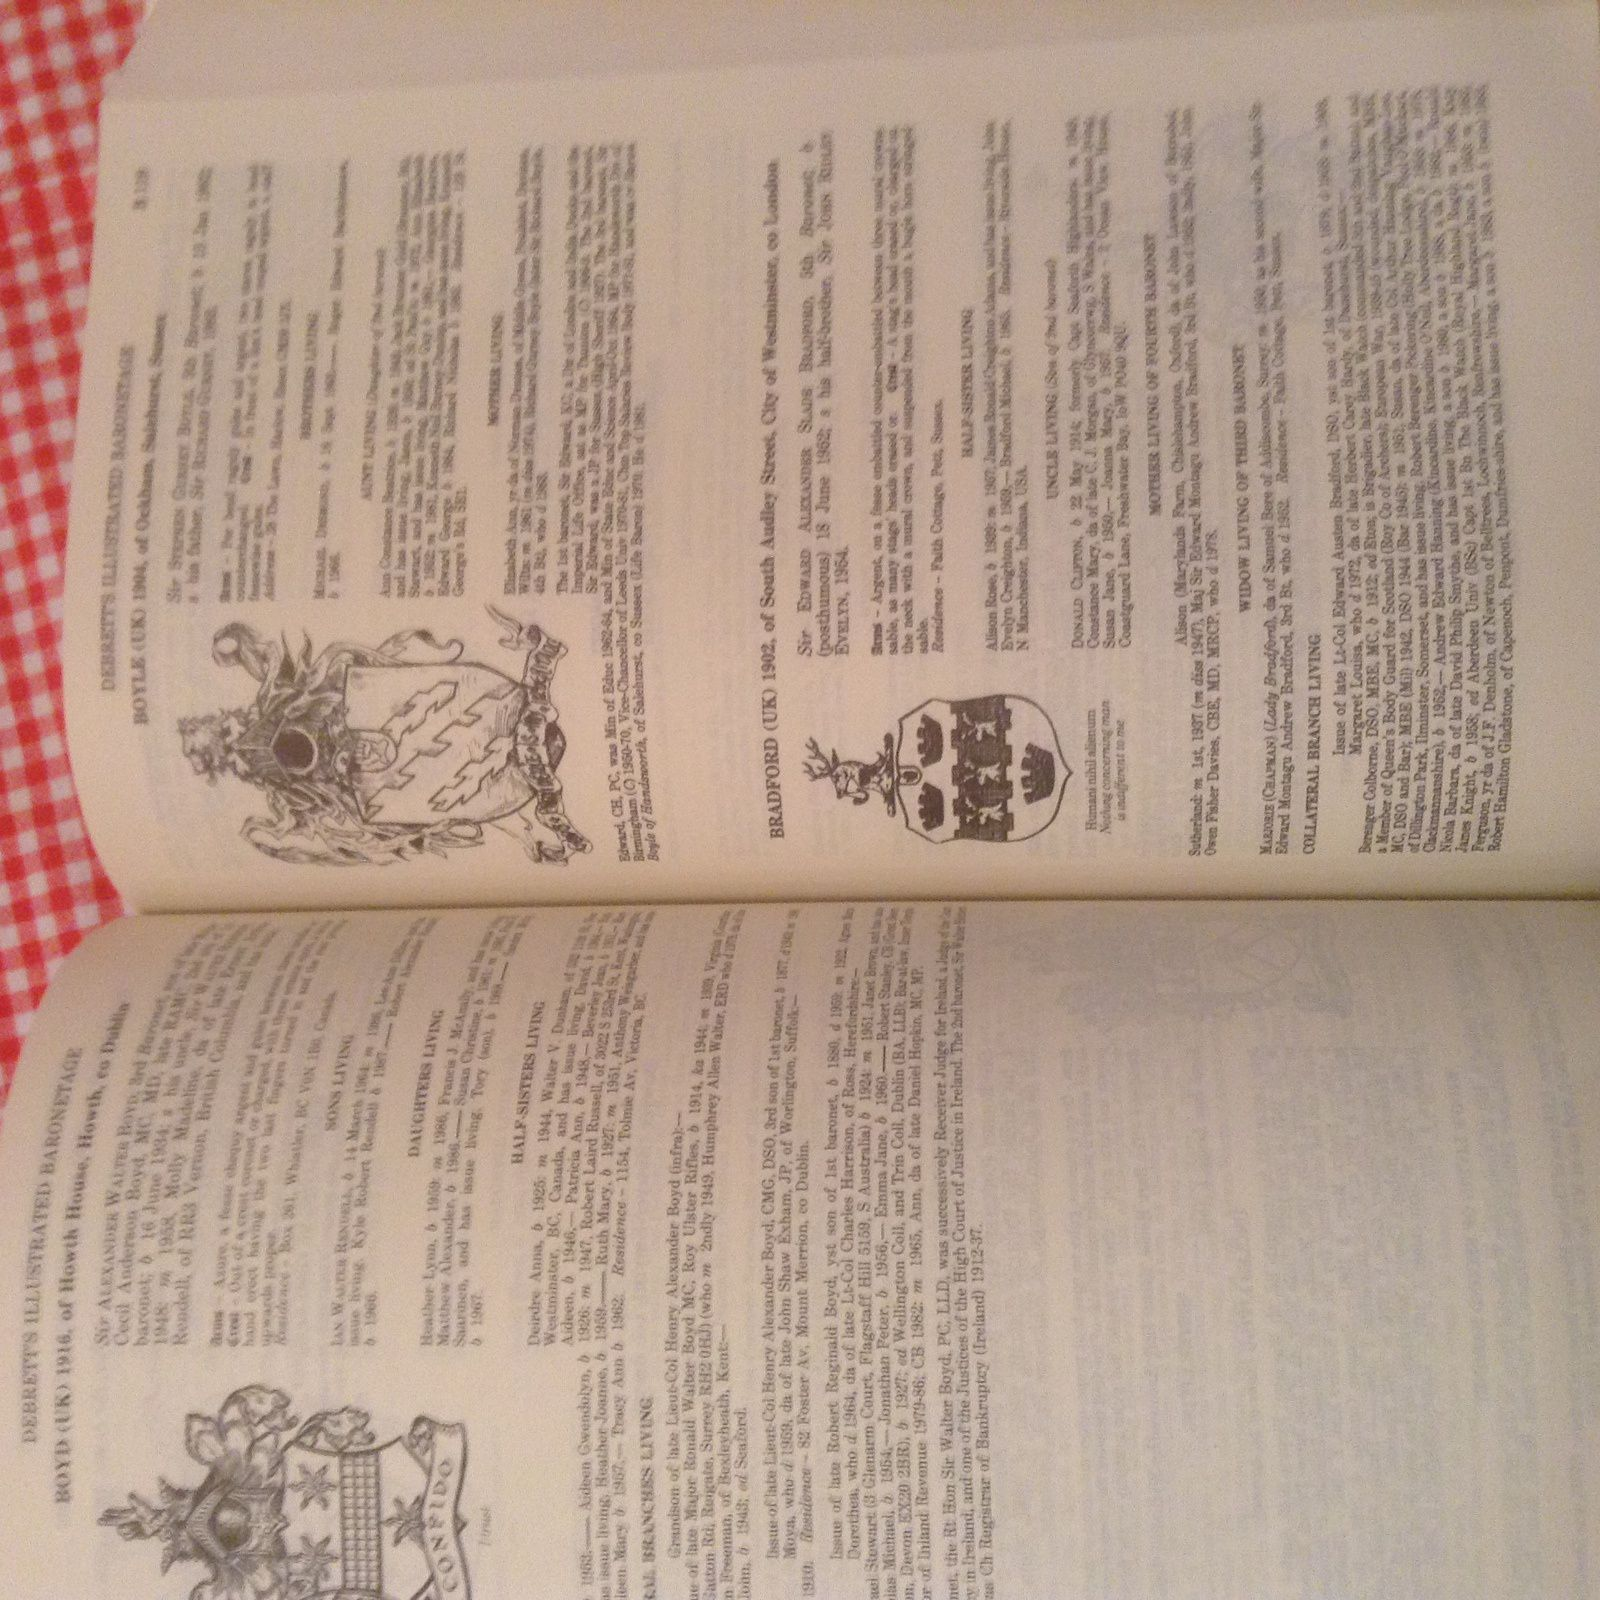 DEBRETT S PEERAGE  &BARONETAGE DE 1990 EN ANGLAIS  DE 1000 PAGES  PRIX 40 €  PORT POSSIBLE +6€